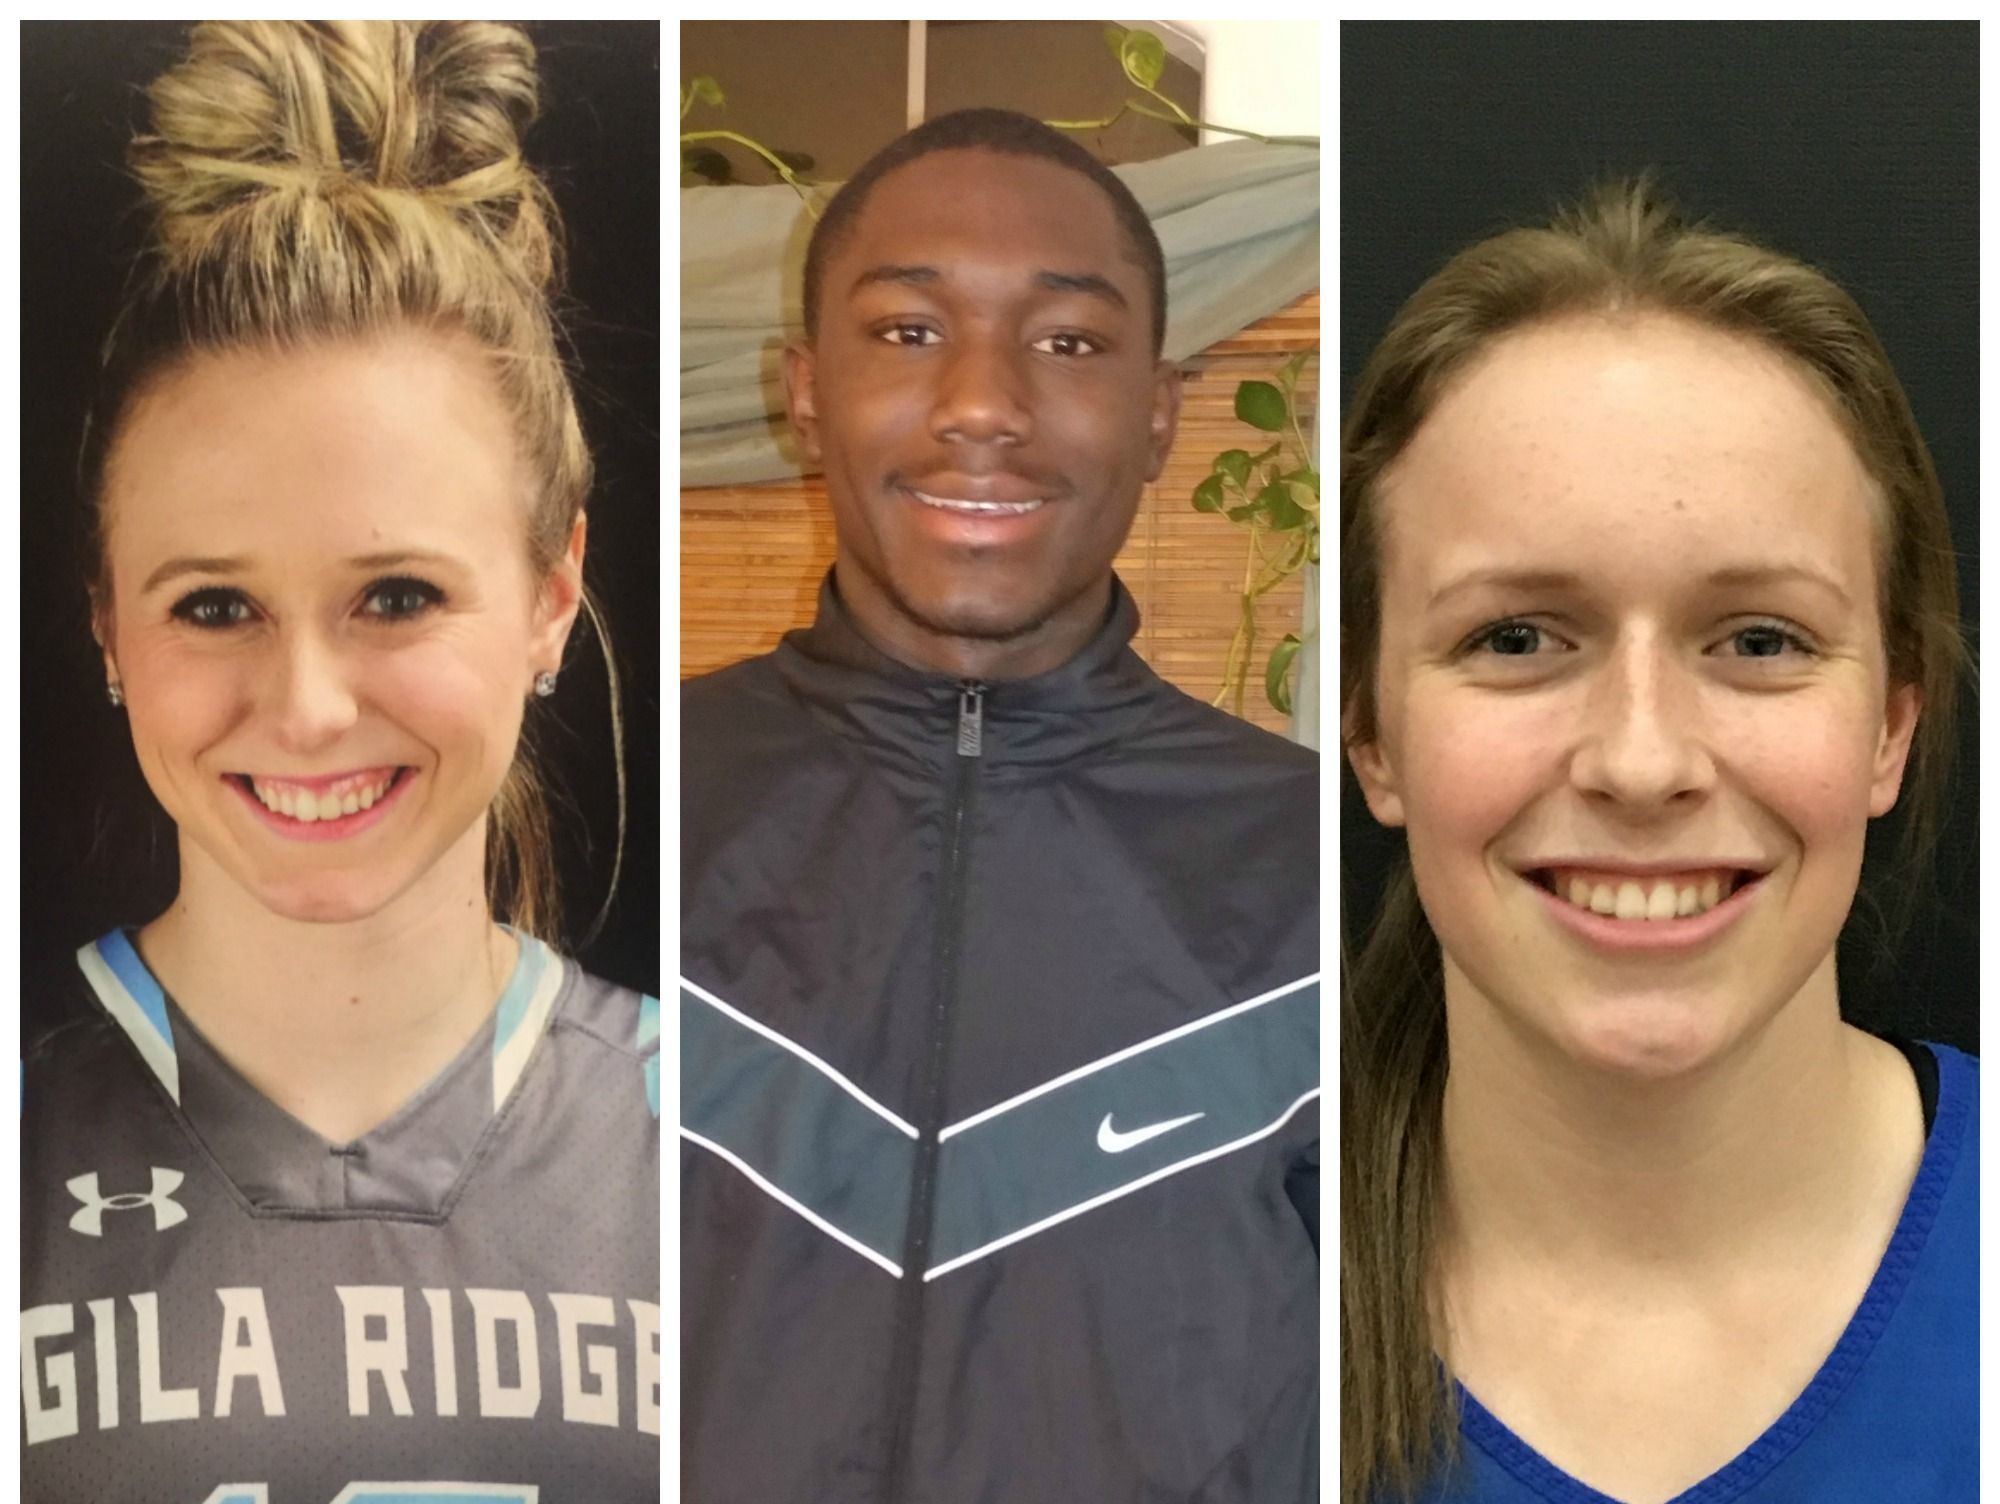 Congratulations to the azcentral.com Sports Awards Athletes of the Week, Kaleb Martin and Lindsey VanAllen, presented by La-Z-Boy Furniture Galleries, and the Academic All-Star of the Week, Hannah Weller, for Feb. 23-March 2.